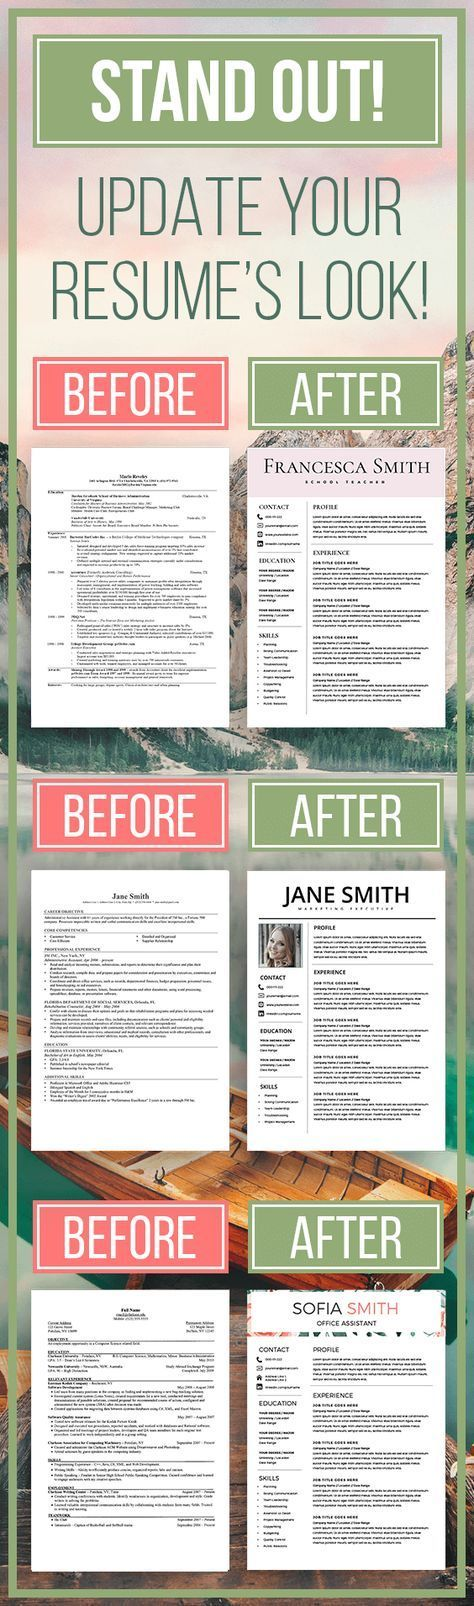 Top Resume Templates, creative cv templates, resume layout - top resume templates